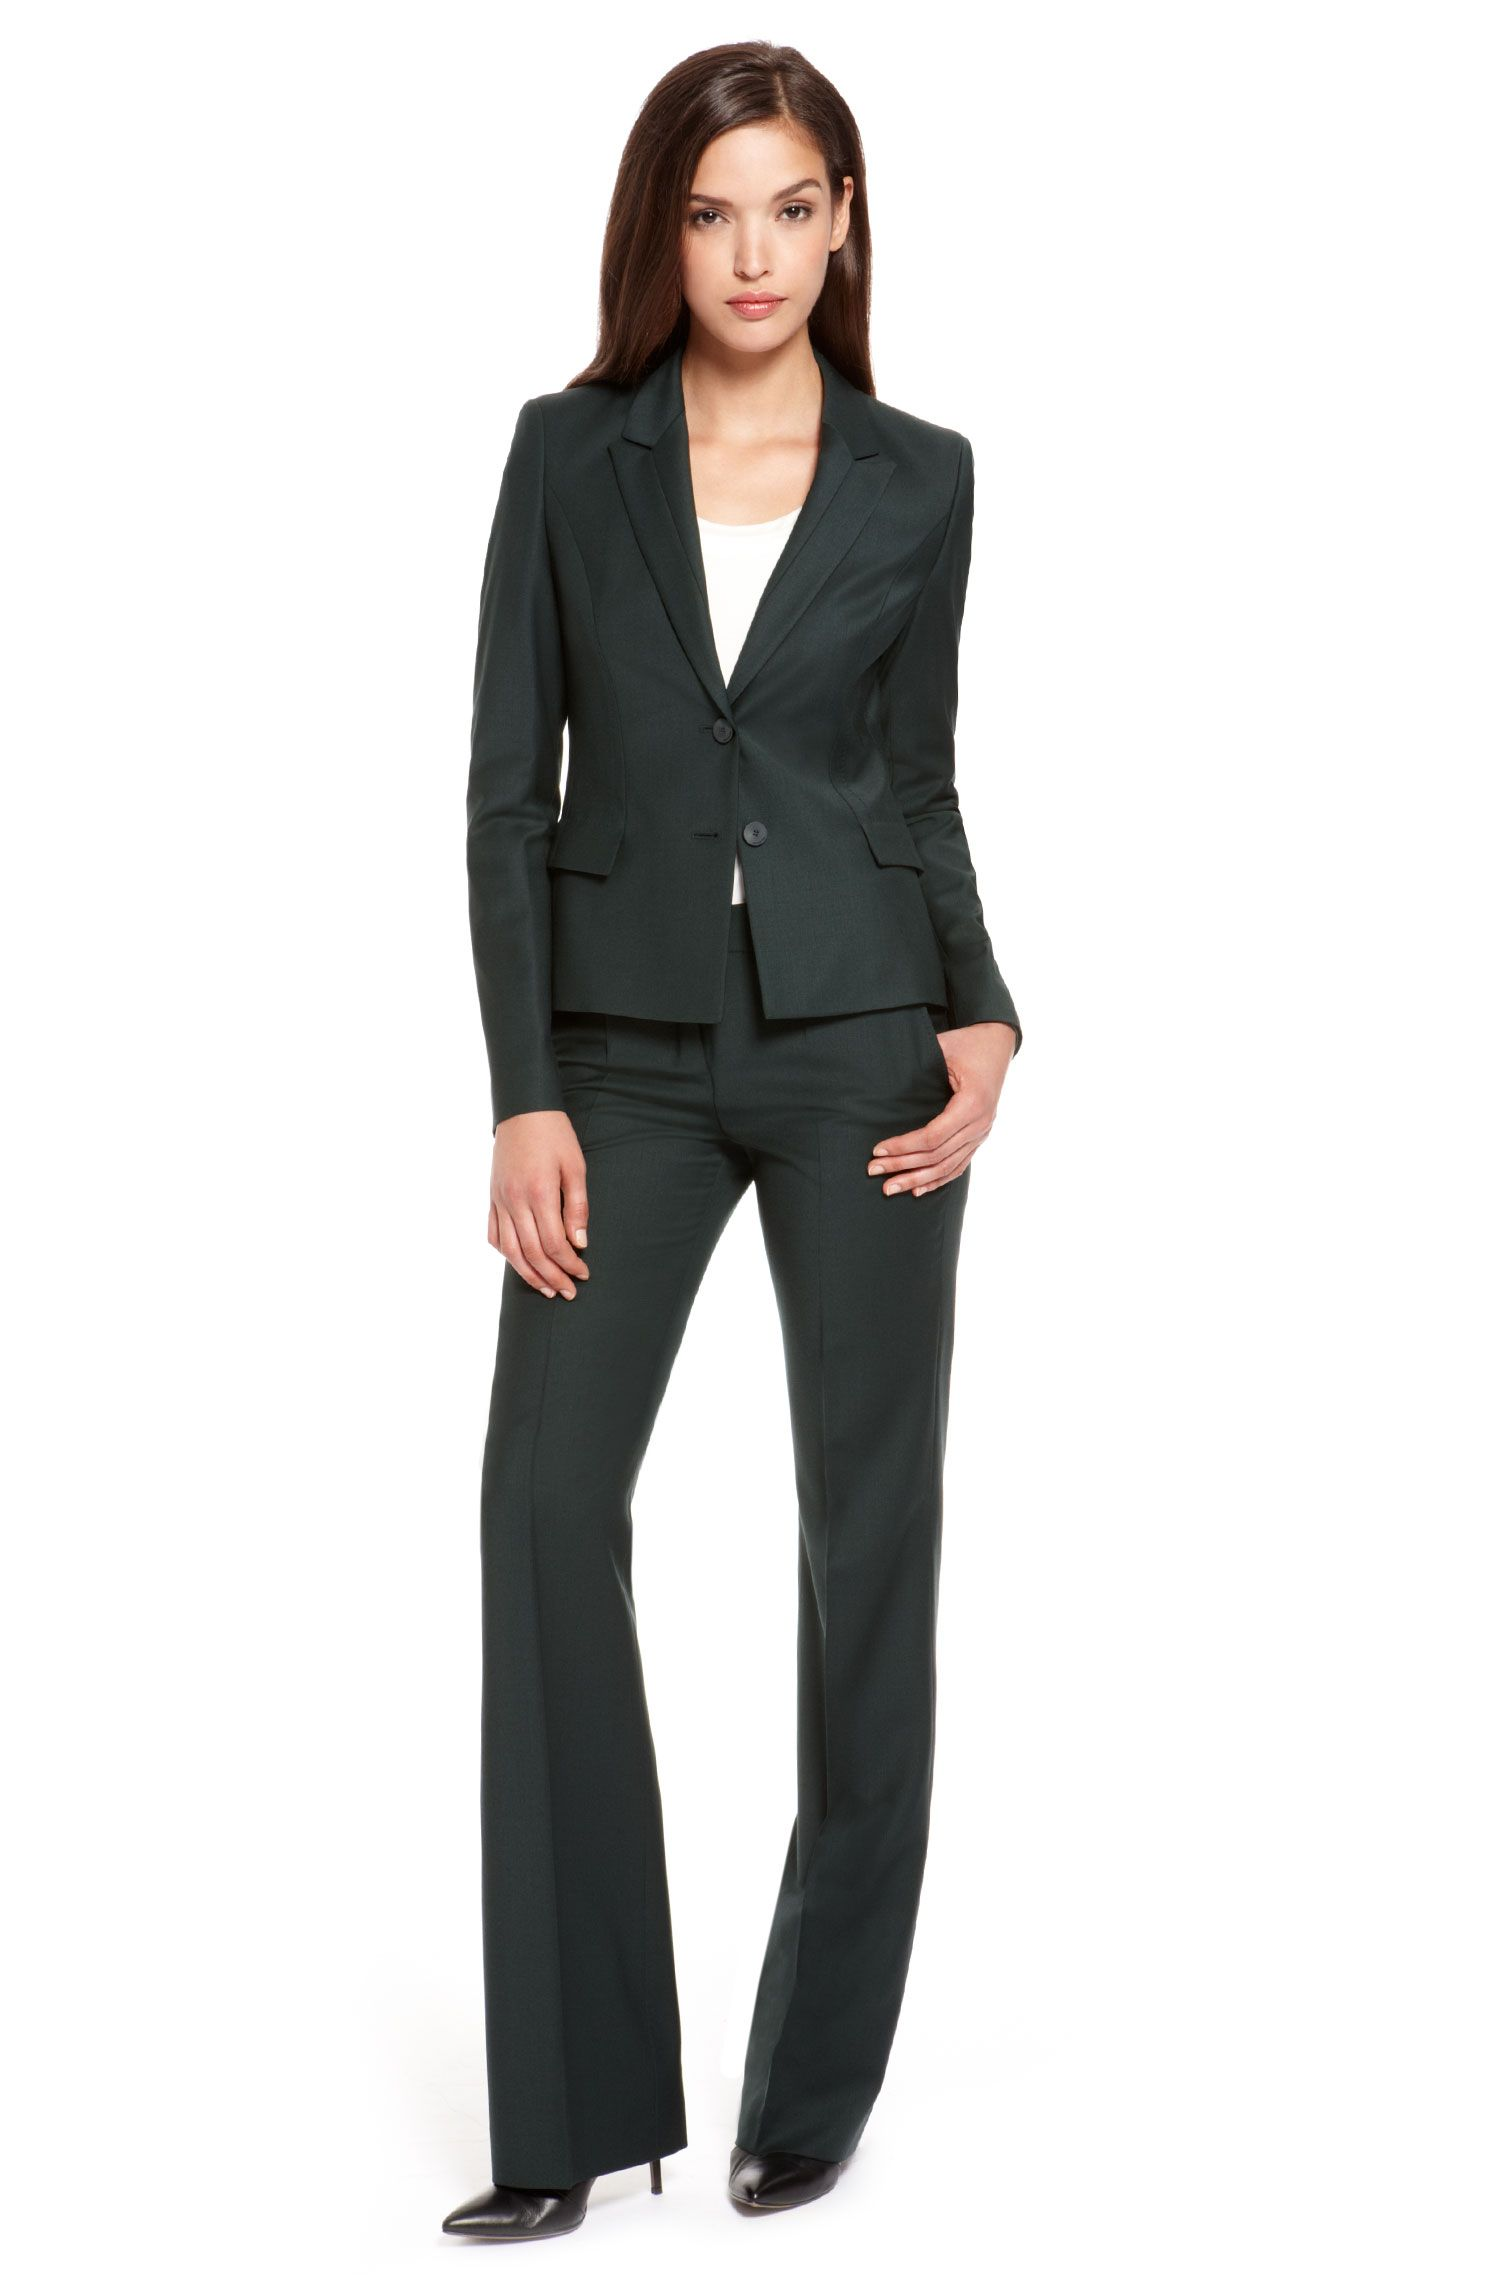 Stretch Virgin Wool-Blend Pant Suit